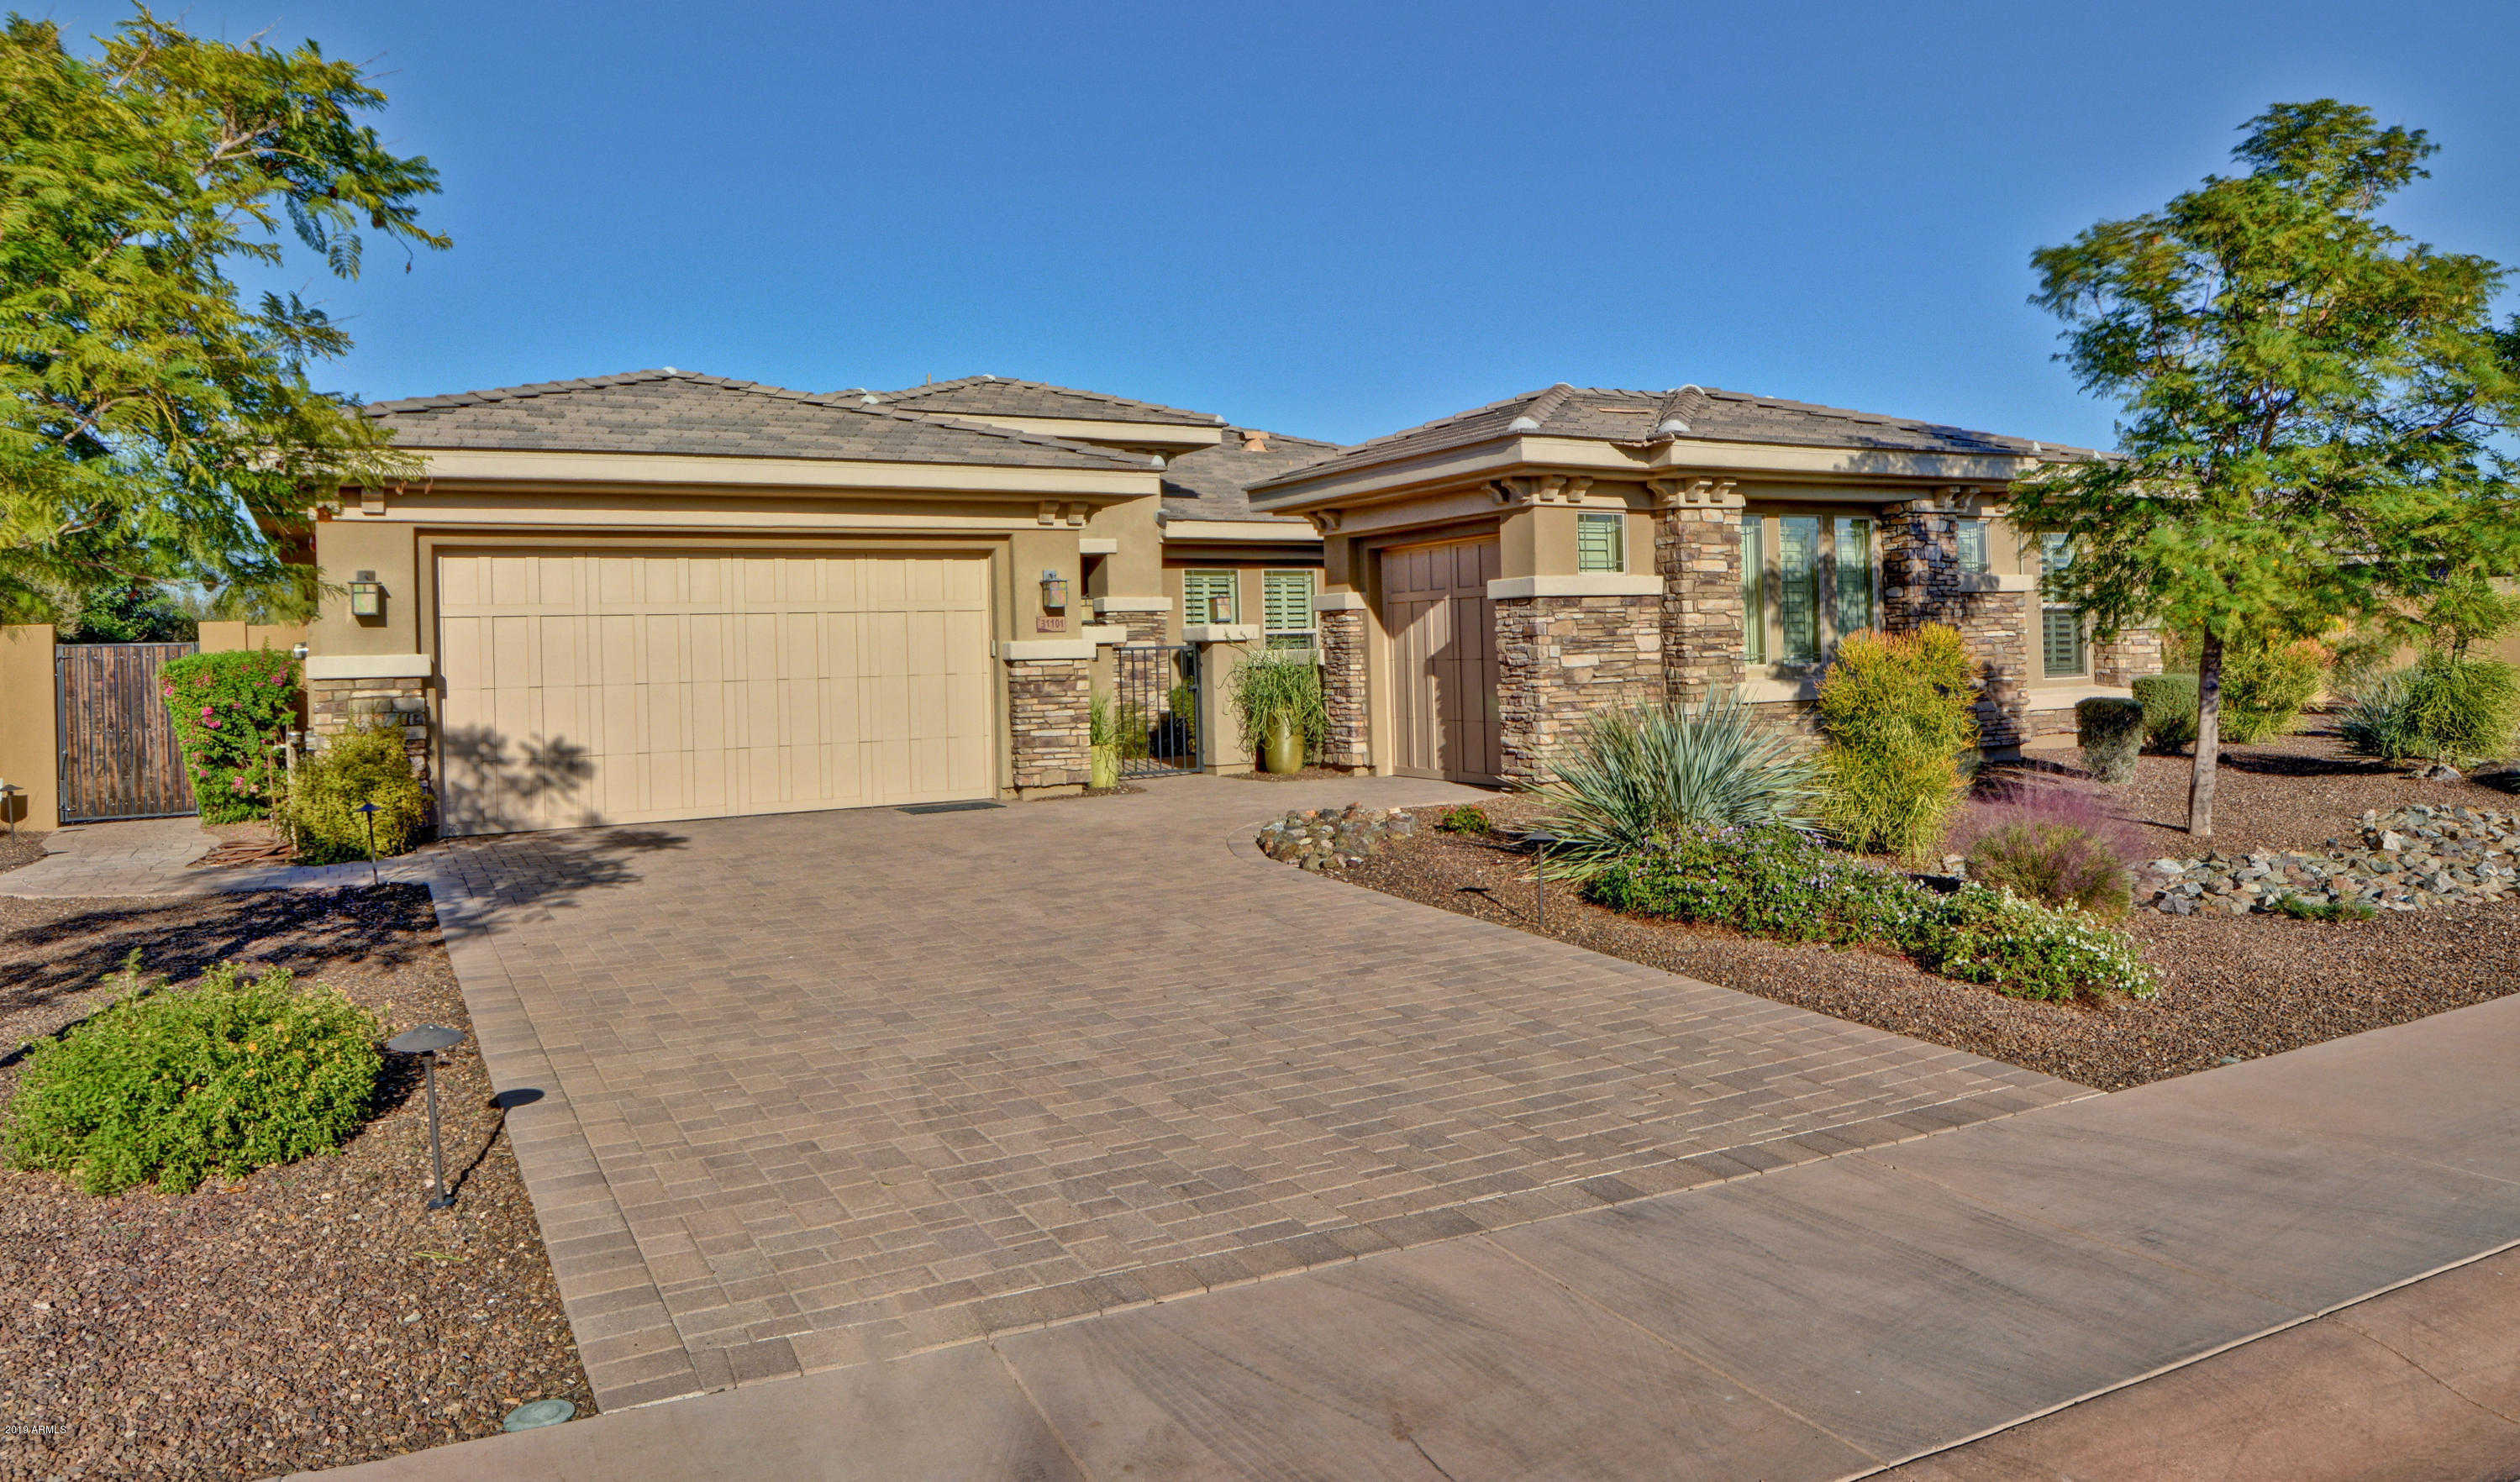 $1,220,000 - 4Br/4Ba - Home for Sale in Blackstone At Vistancia Parcel A4, Peoria